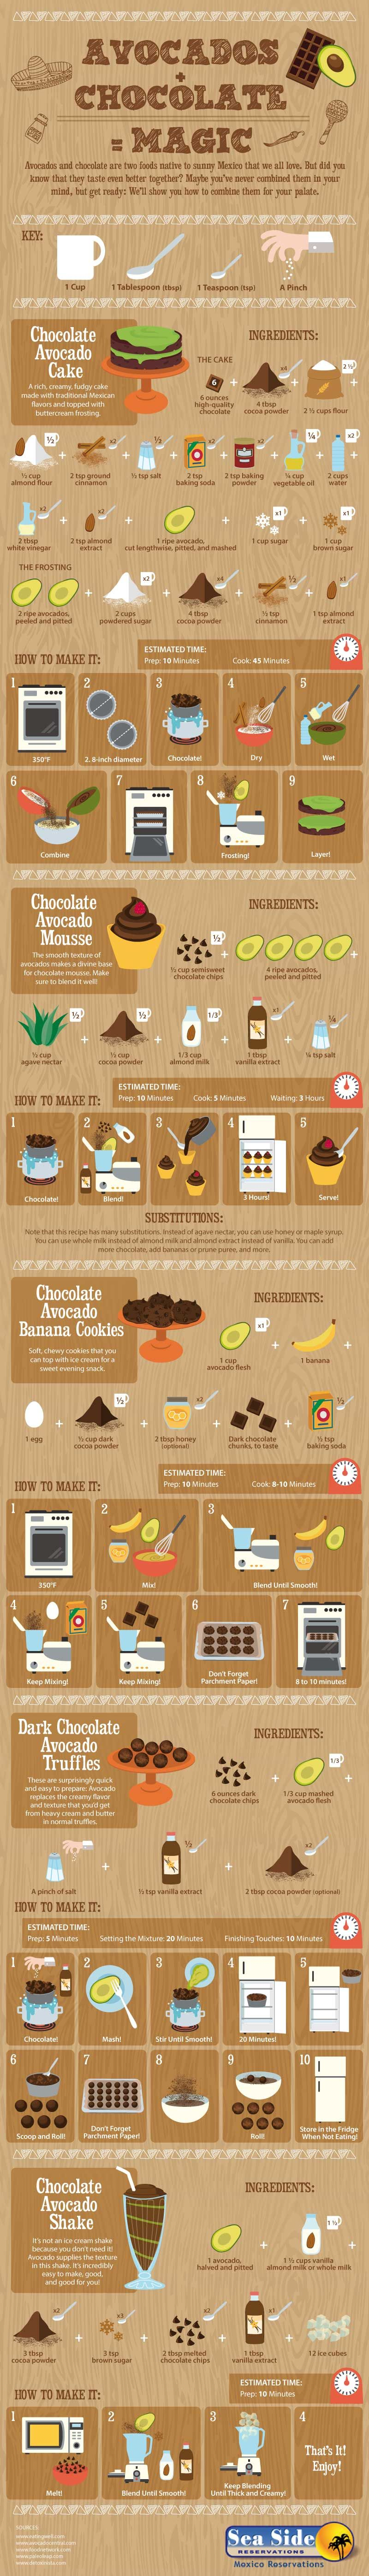 Avocados Plus Chocolate = Magic! #infographic